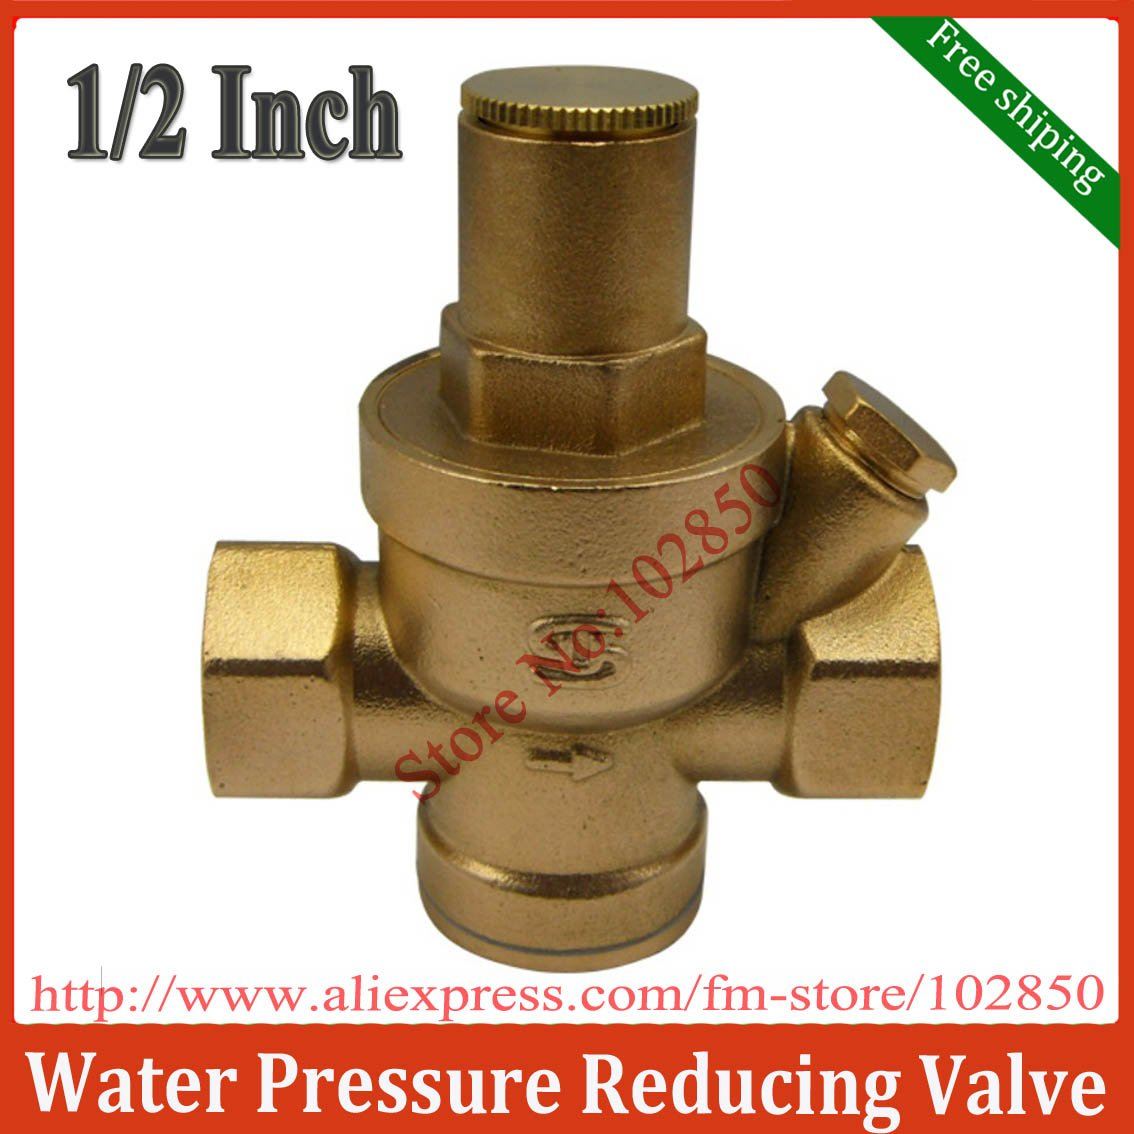 buy 1 2inch bsp water pressure reducing valve with pressure gauge brass h59. Black Bedroom Furniture Sets. Home Design Ideas